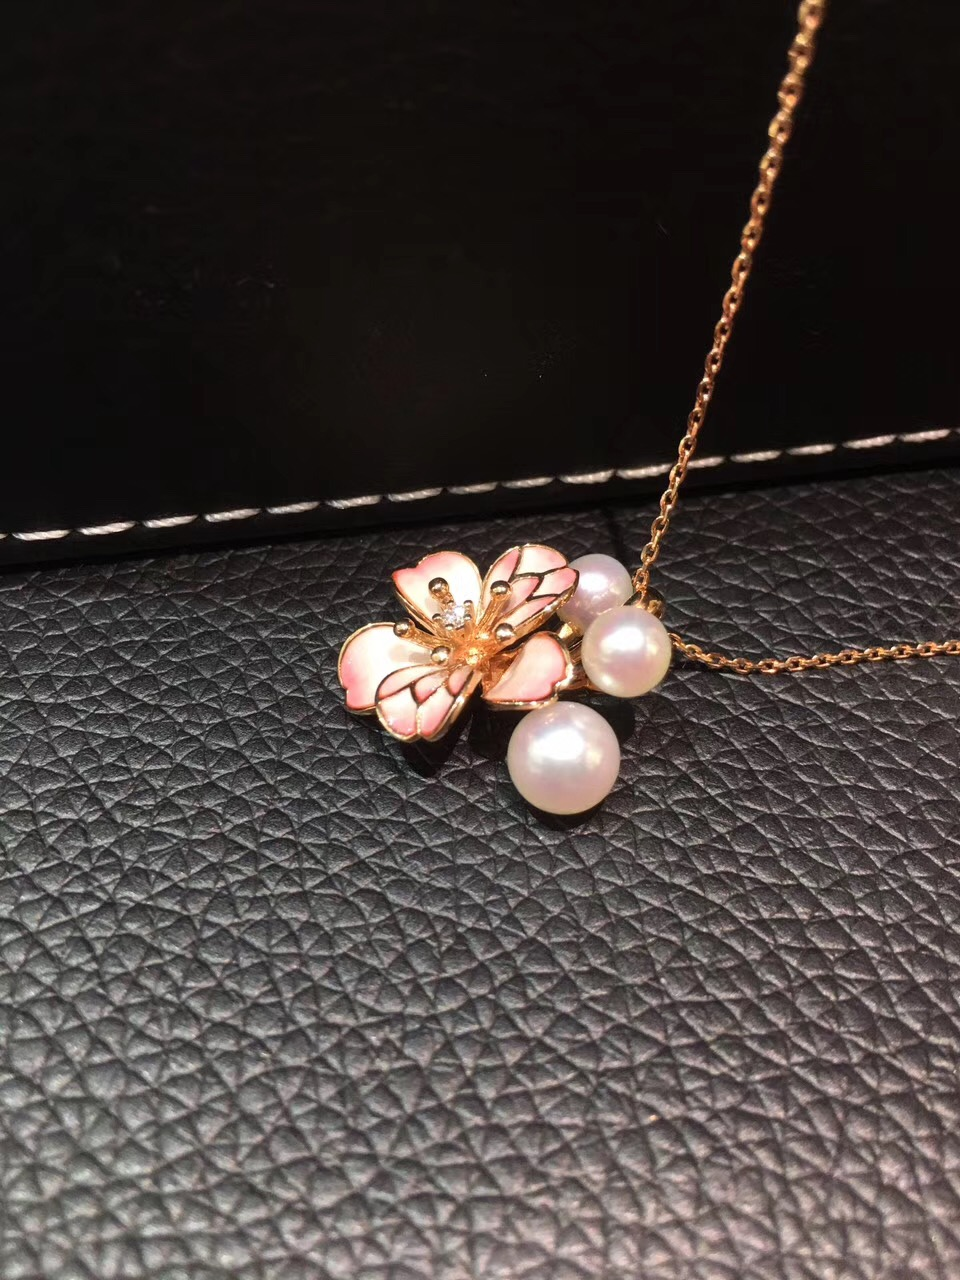 pink sakura oriental cherry pendant necklace 5-7MM natural sea water pearl akoya pendant 18K rose gold with diamond fine jewelry hot sale new style aaaa 7mm genuine akoya pink sea water pearl necklace 14kgp j5534